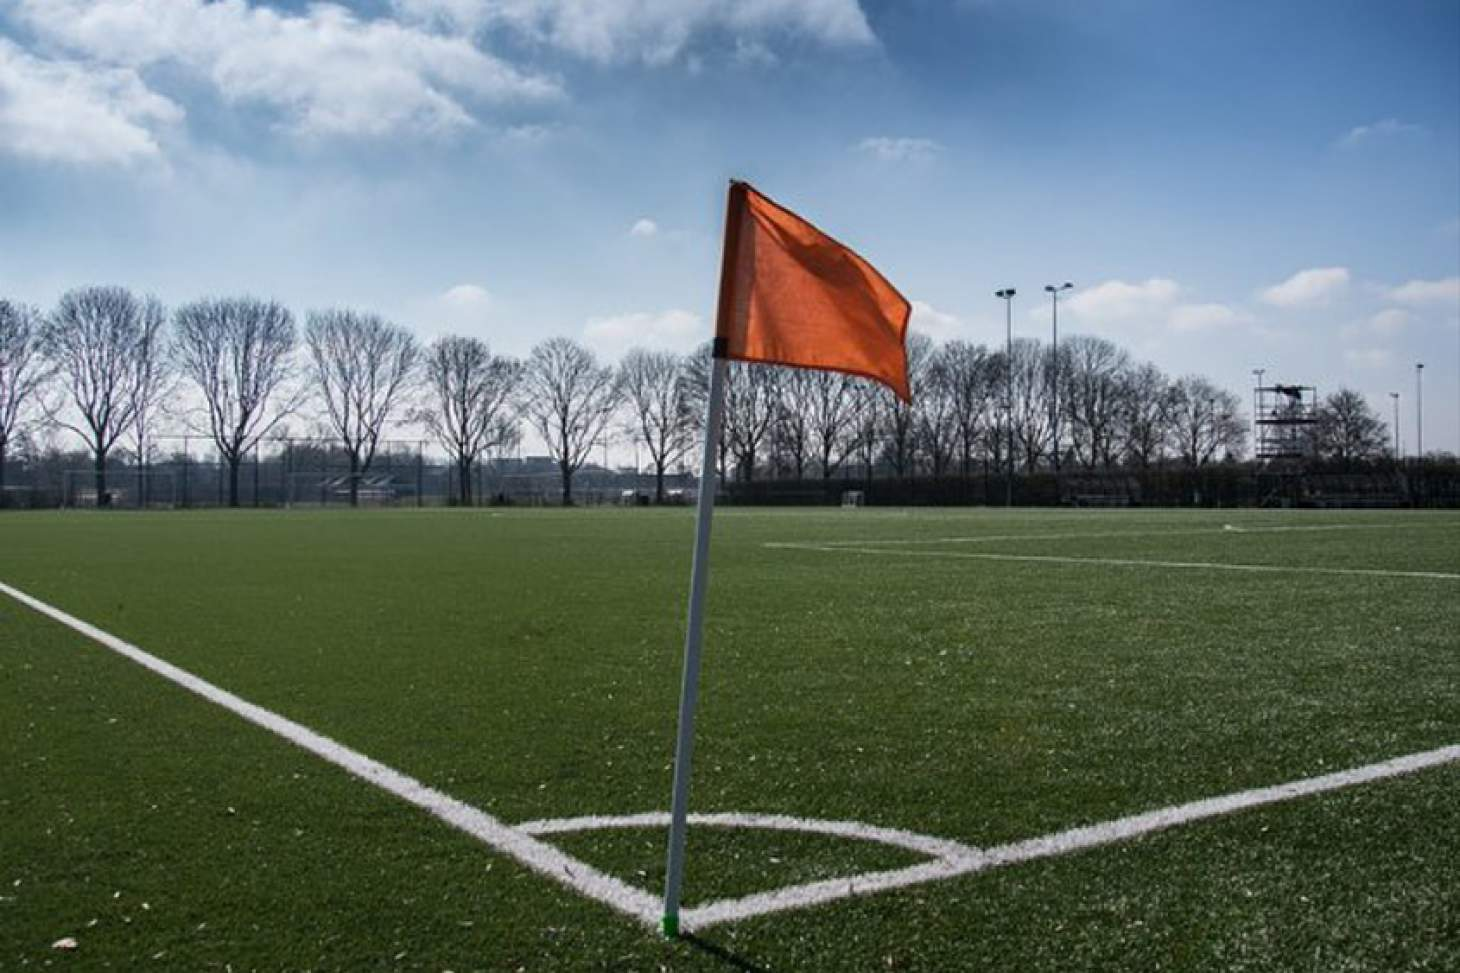 Waterhall Sports Ground 11 a side | Grass football pitch